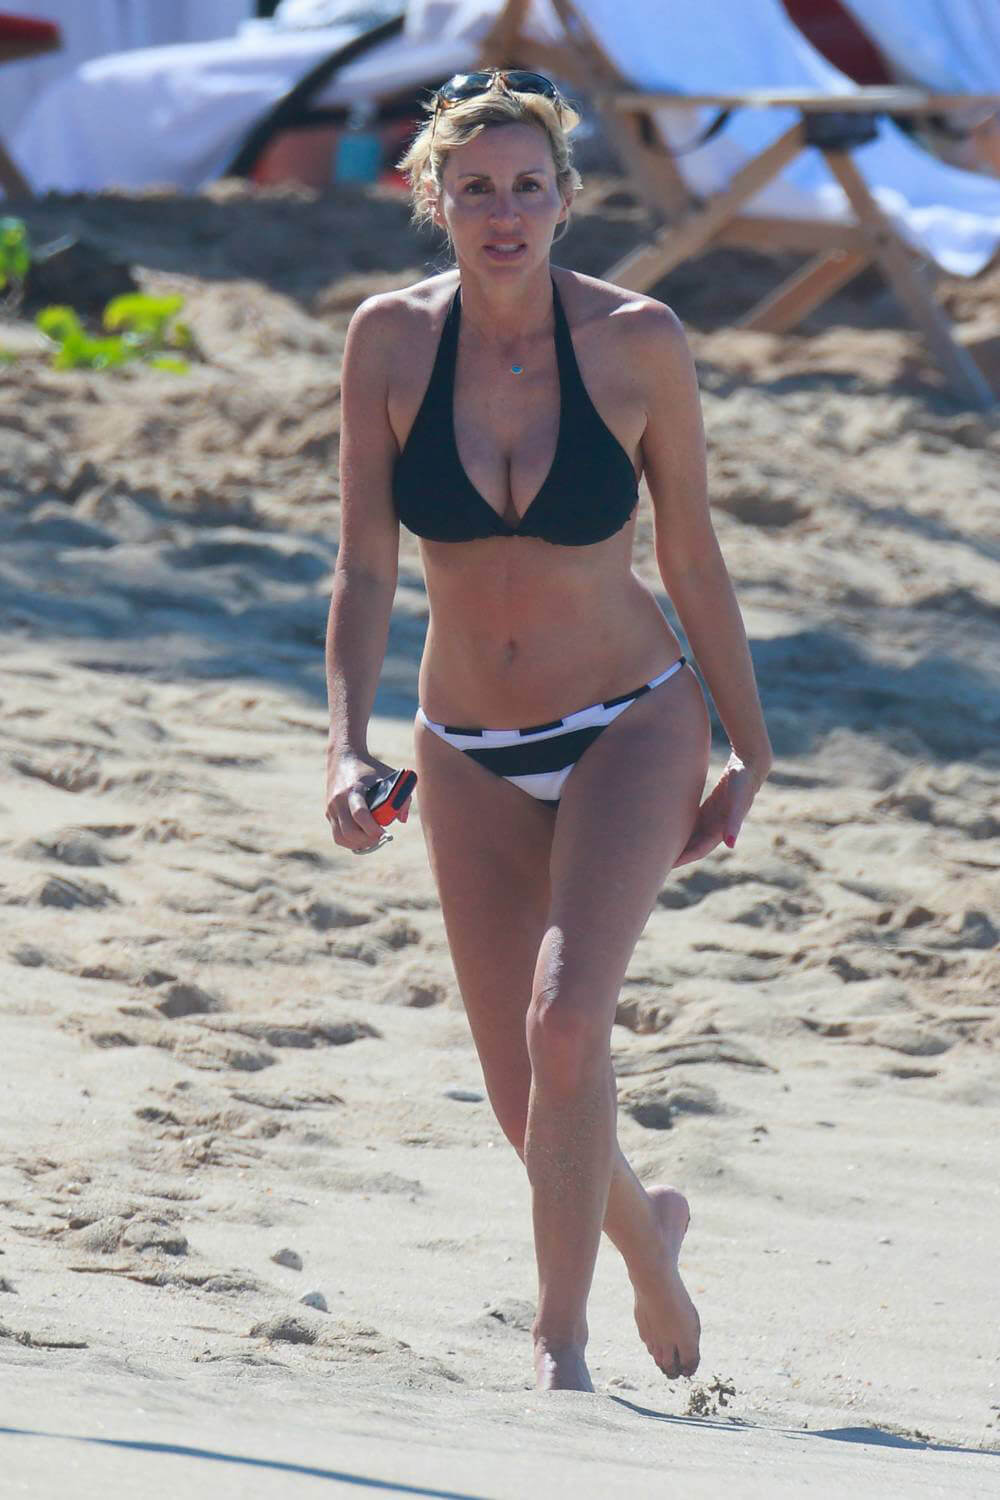 Camille Grammer hot legs pic